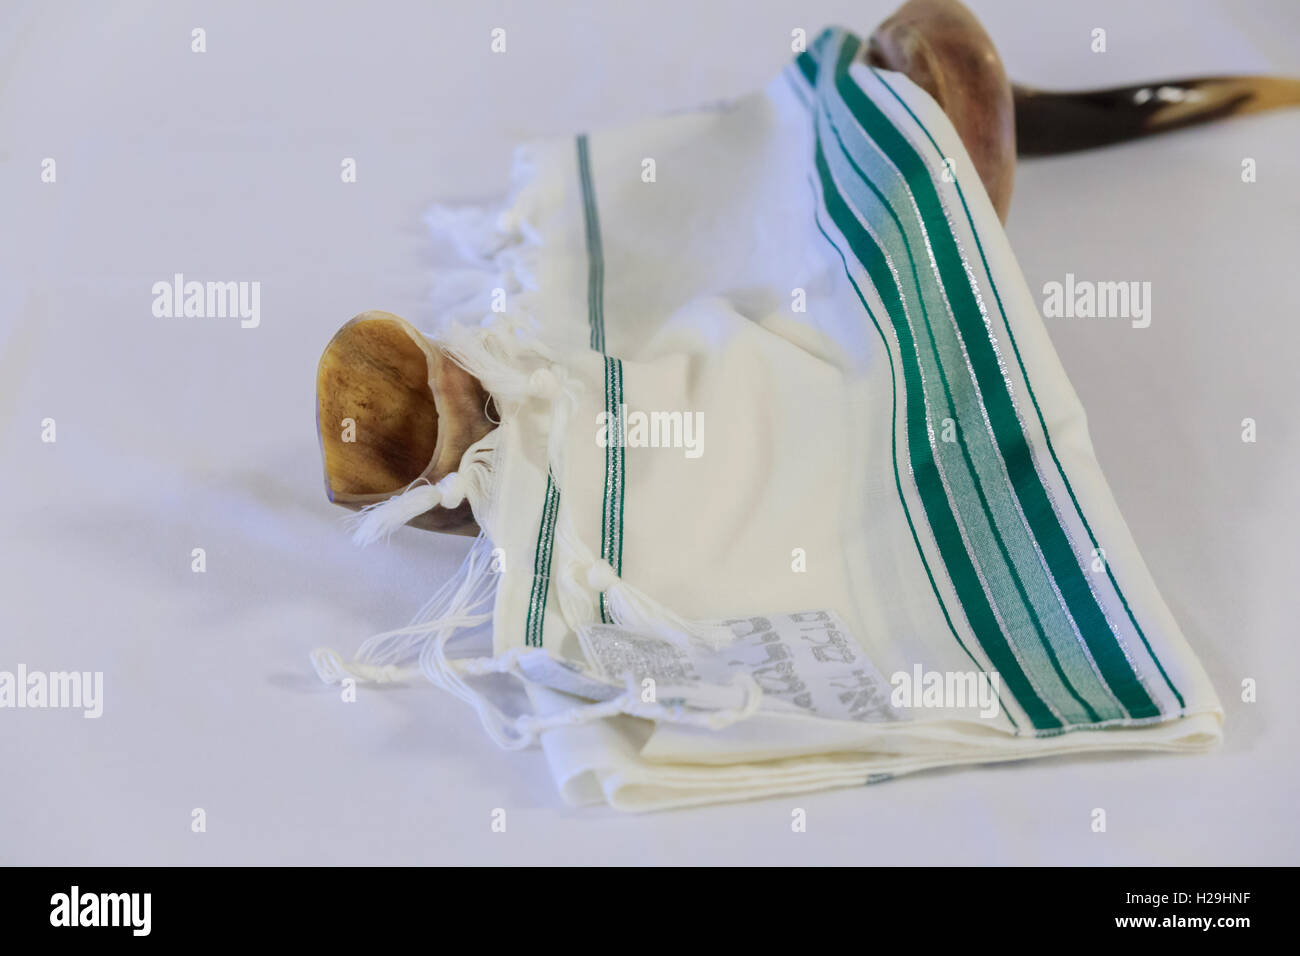 Prayer Shawl Tallit And Shofar Jewish Religious Symbol Stock Photo